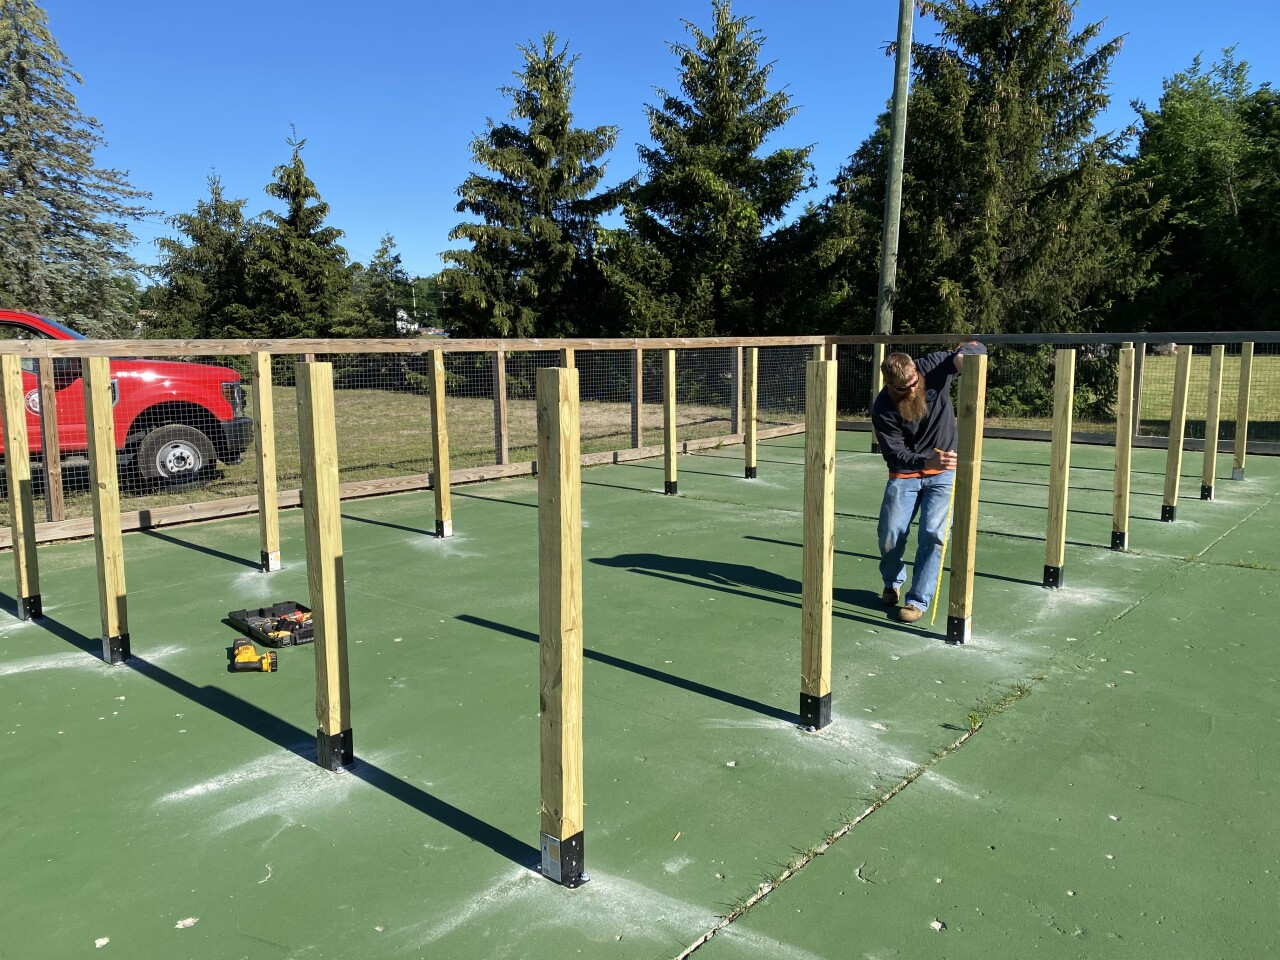 Crews are working on the human foosball fields in Eaton Rapids